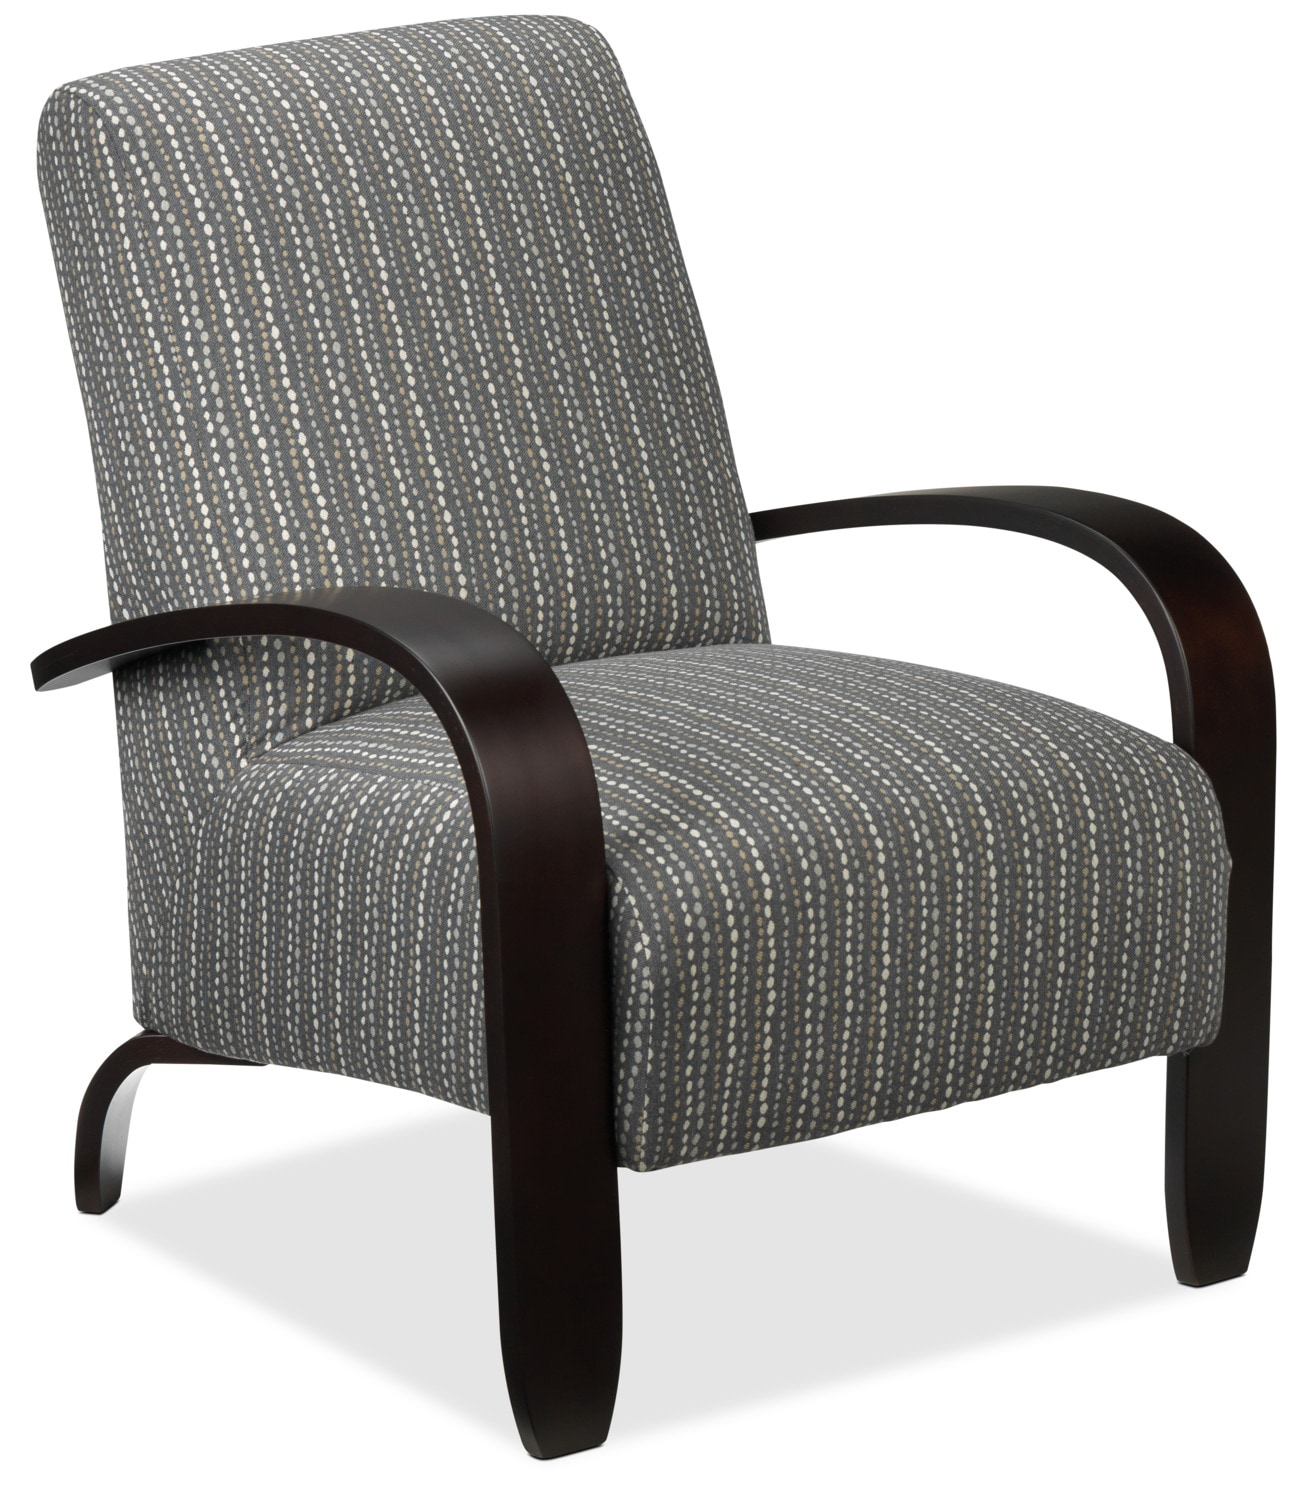 Reya Accent Chair - Grey